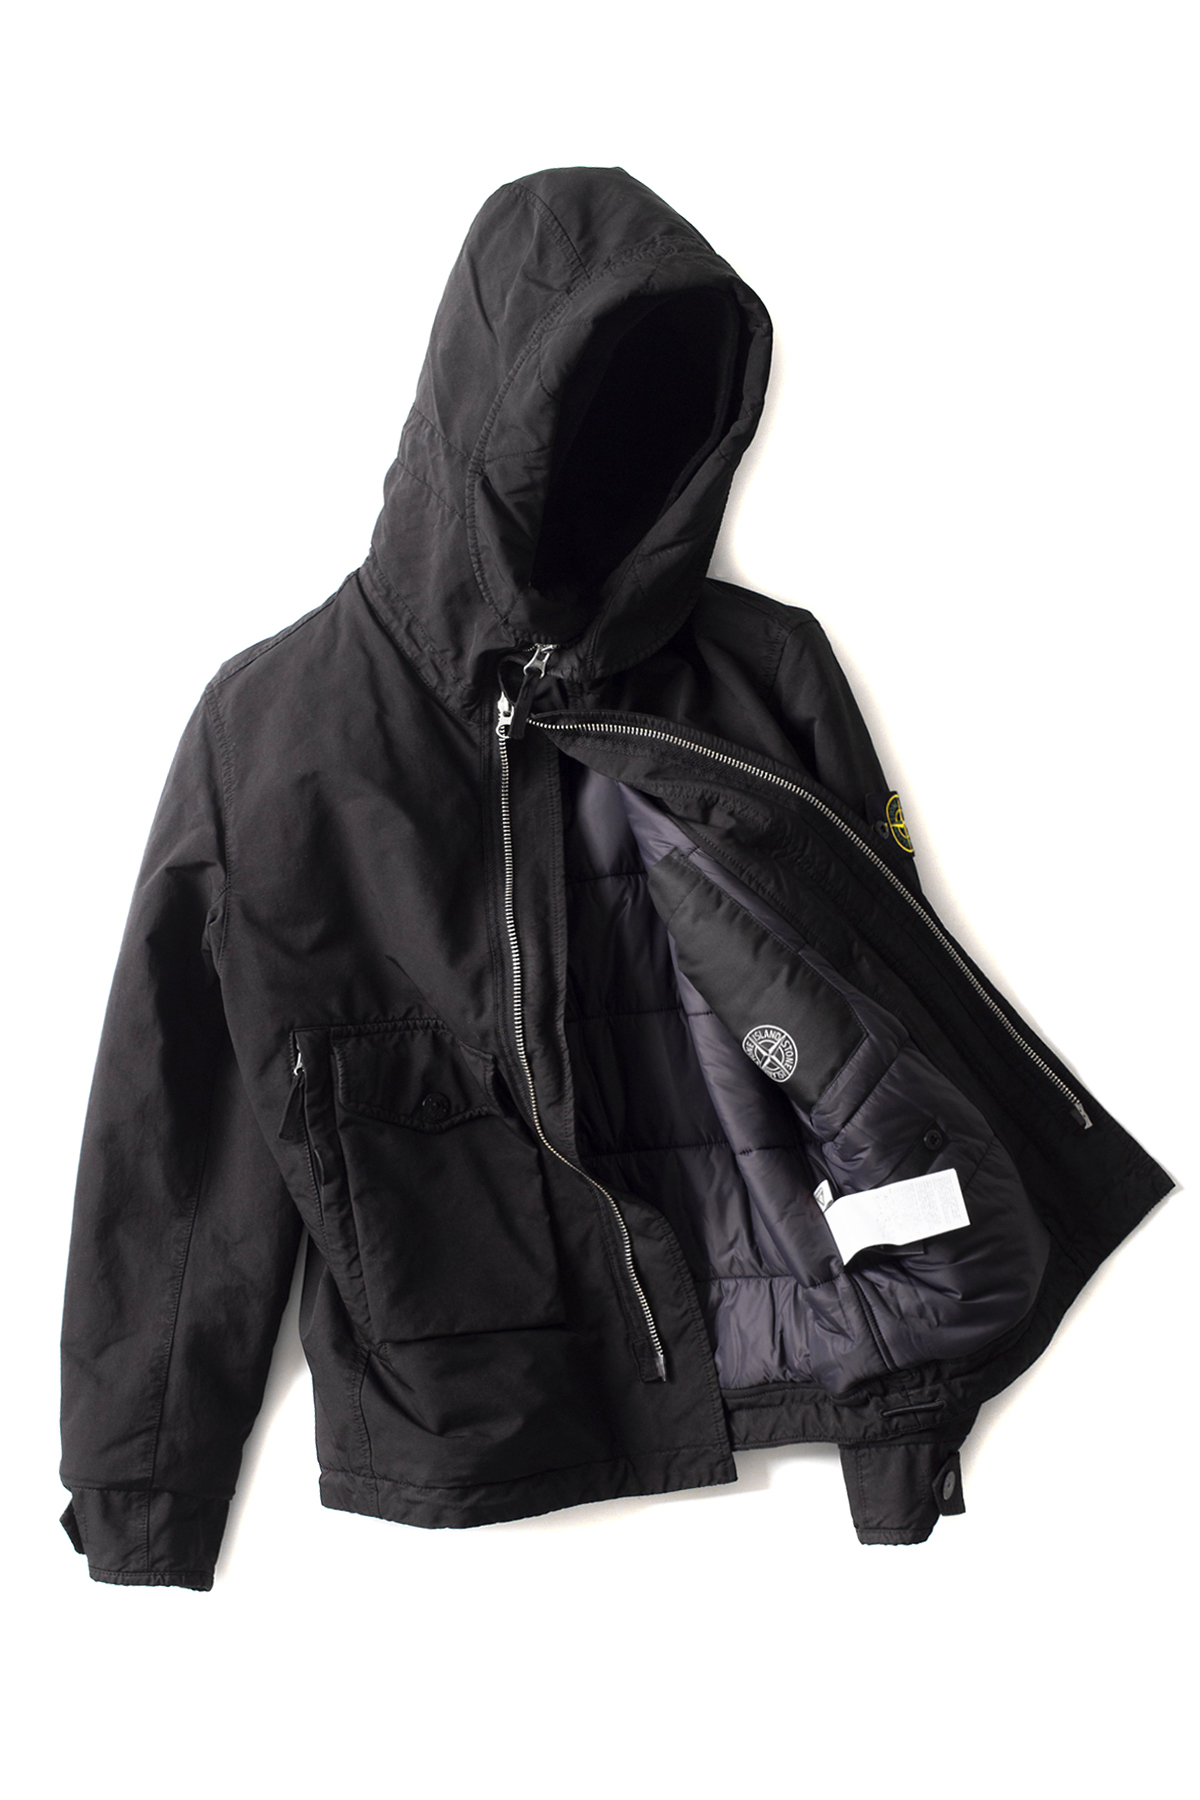 Stone Island : David - TC With Primaloft (Black)